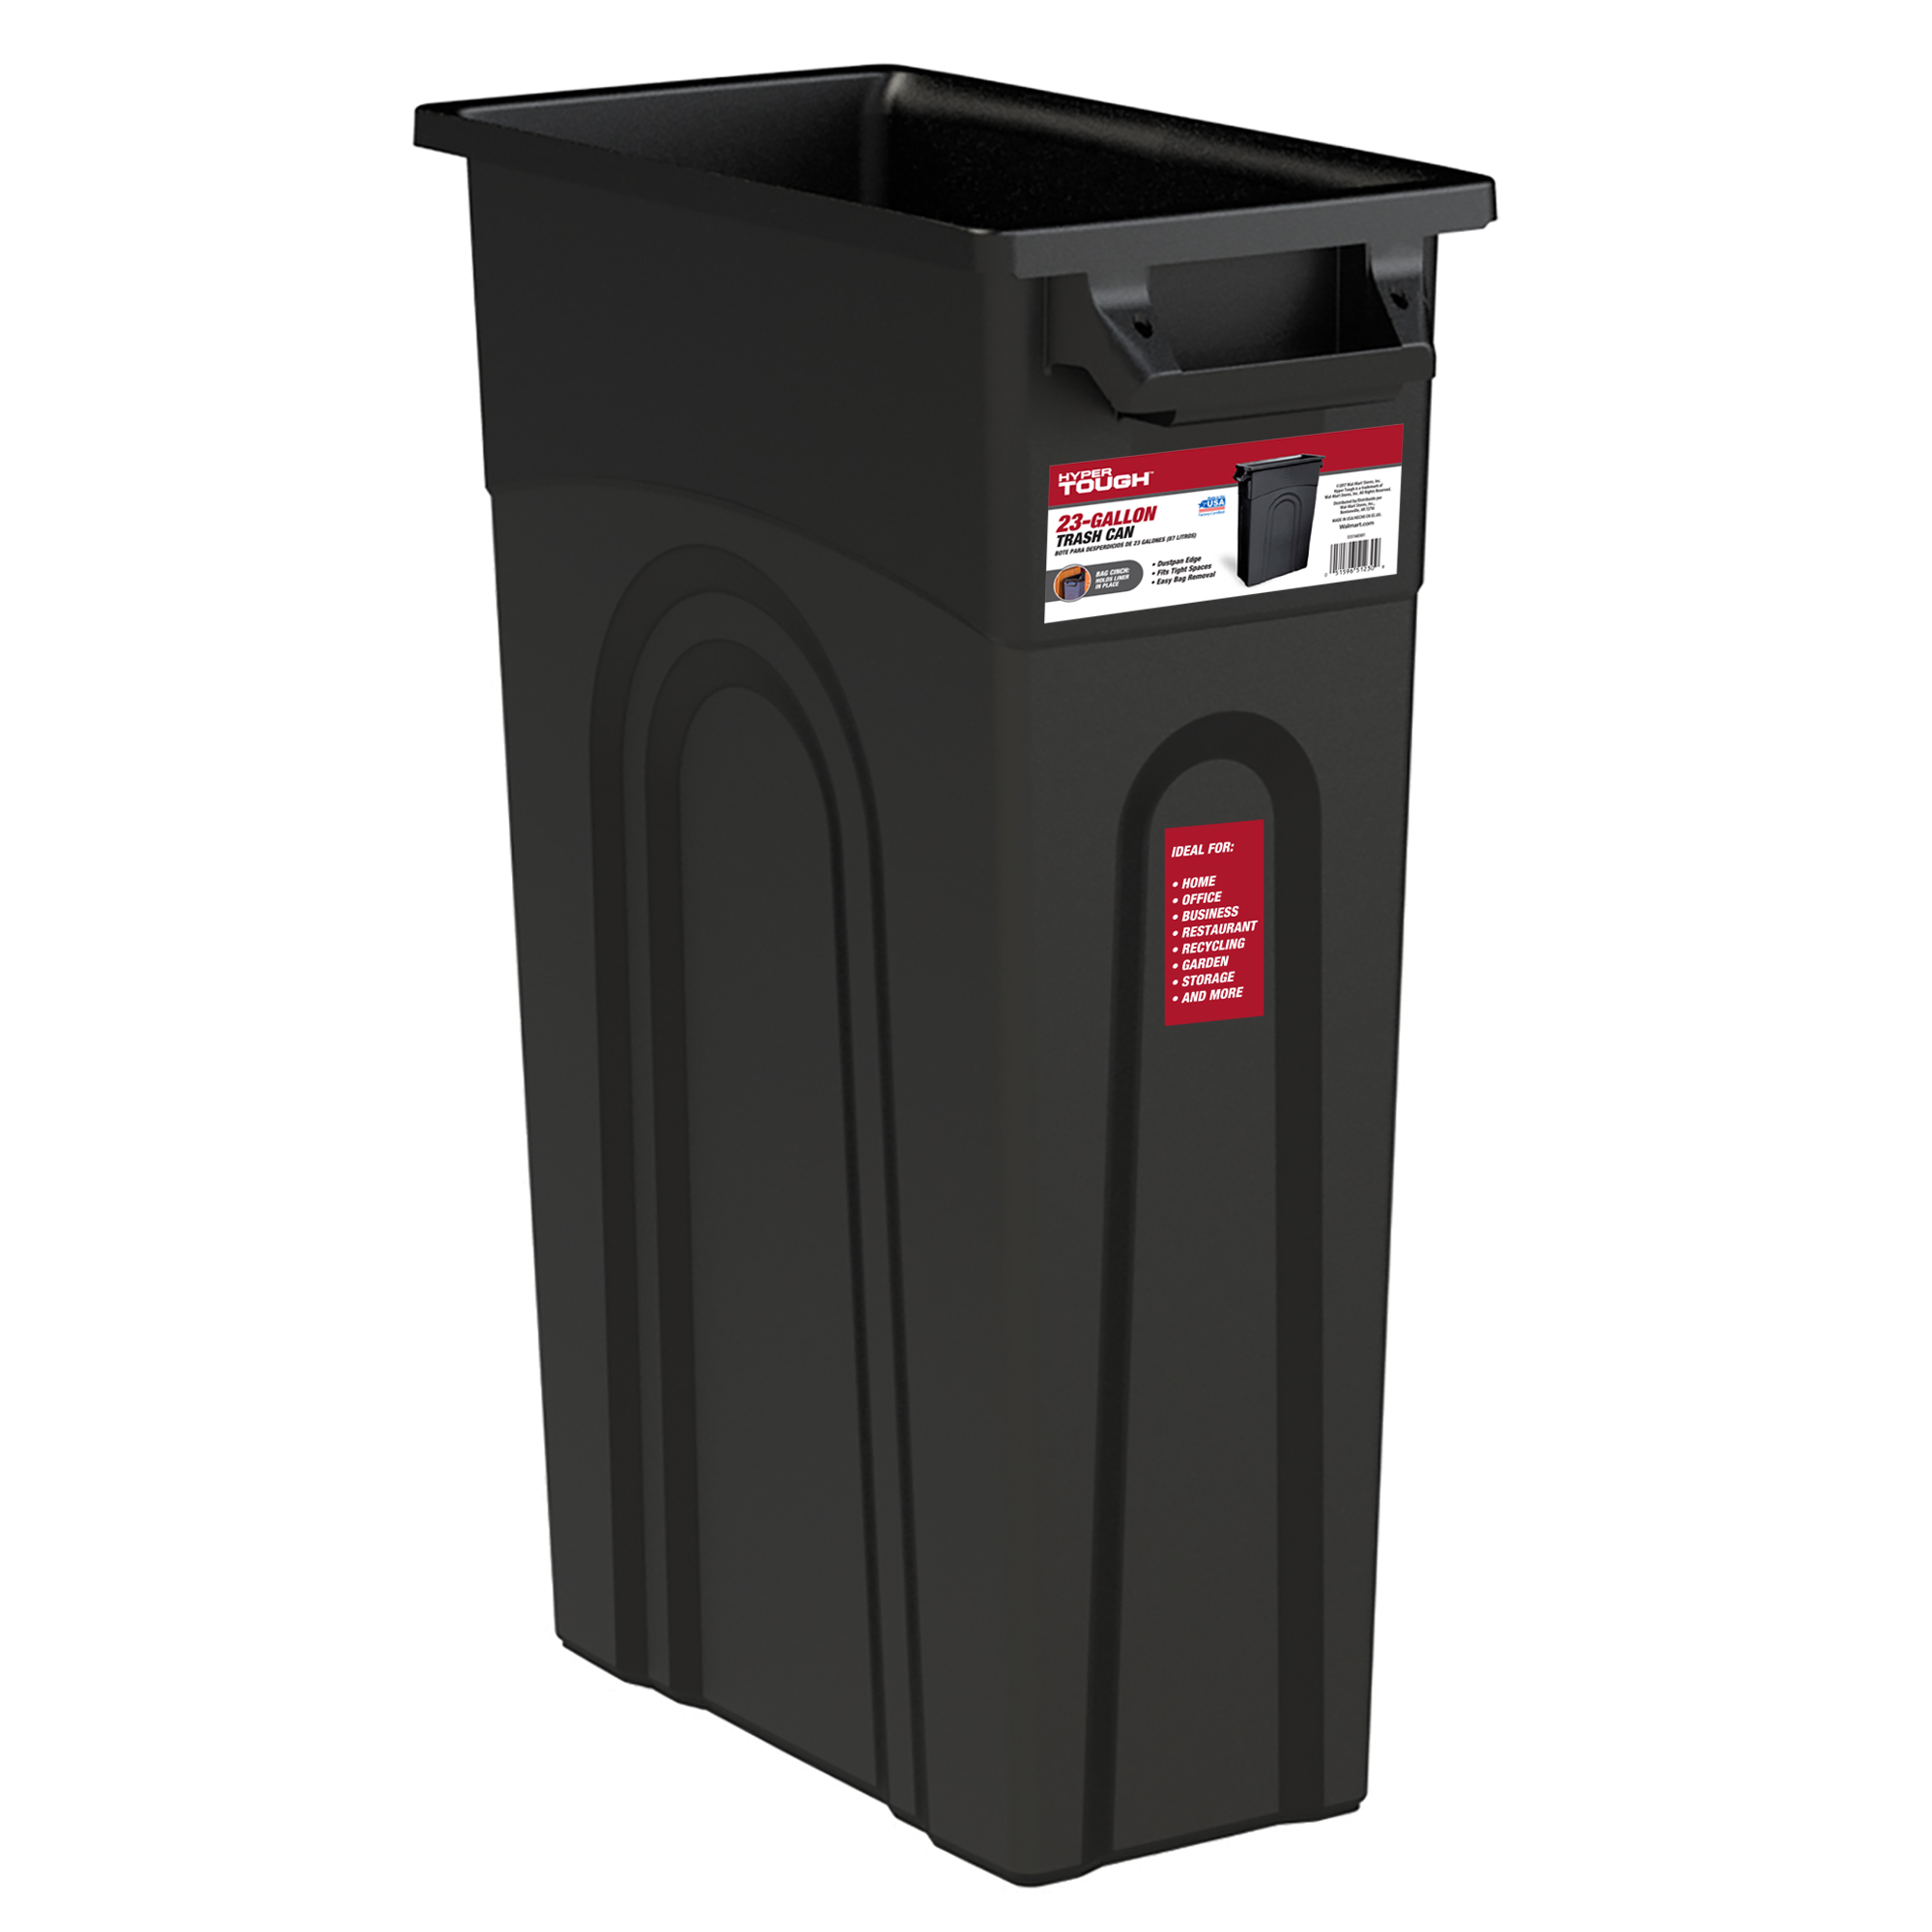 CONTAINER WASTE BLACK 23 GAL